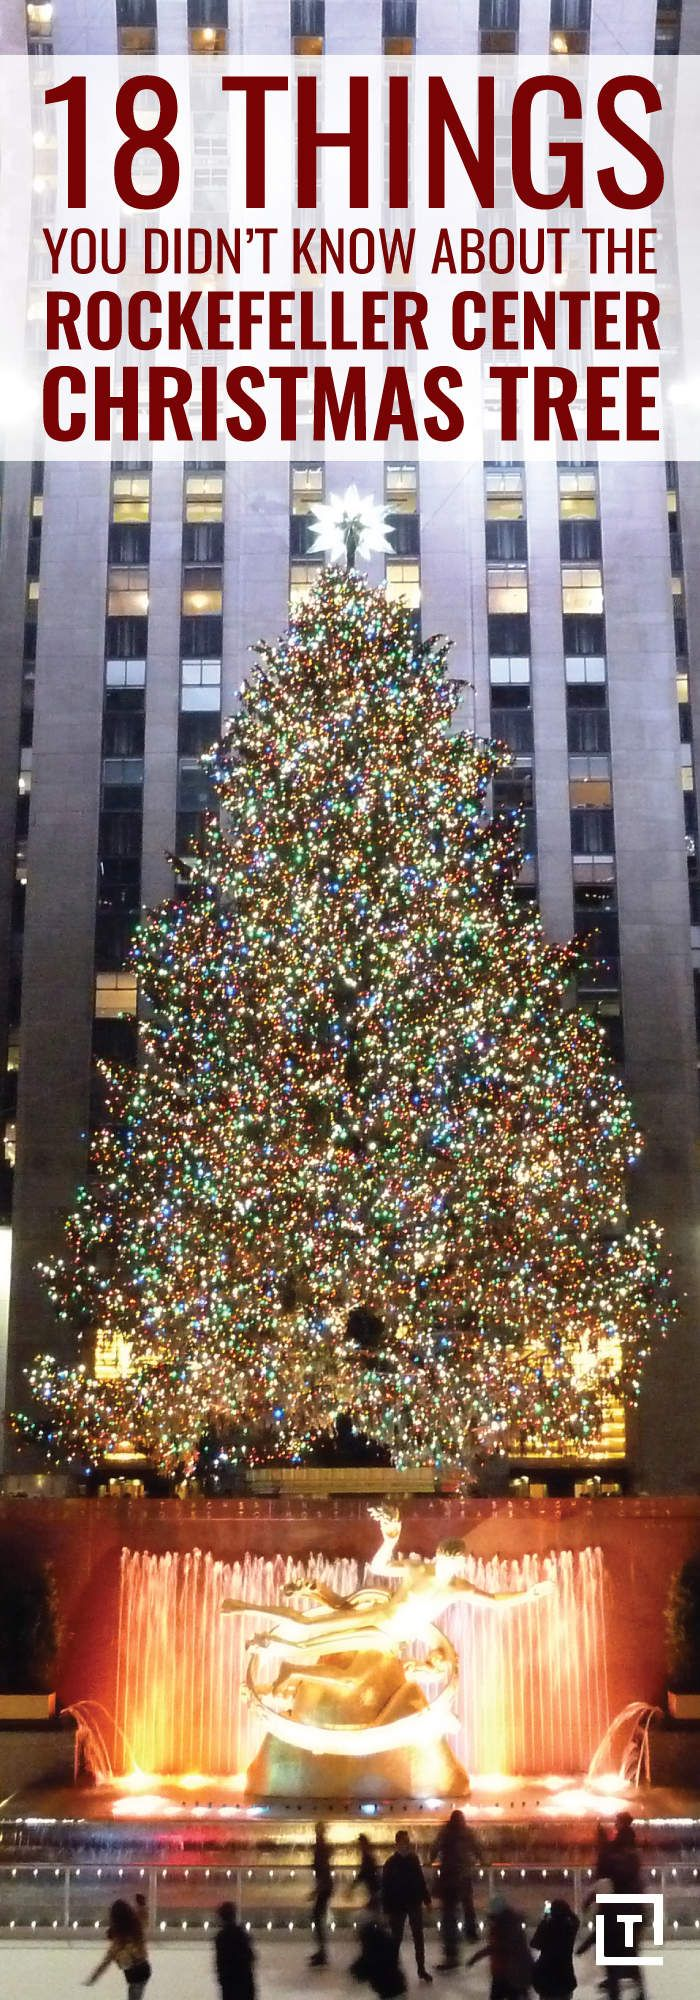 18 Things you did not know about The Rockefeller Center Christmas Tree